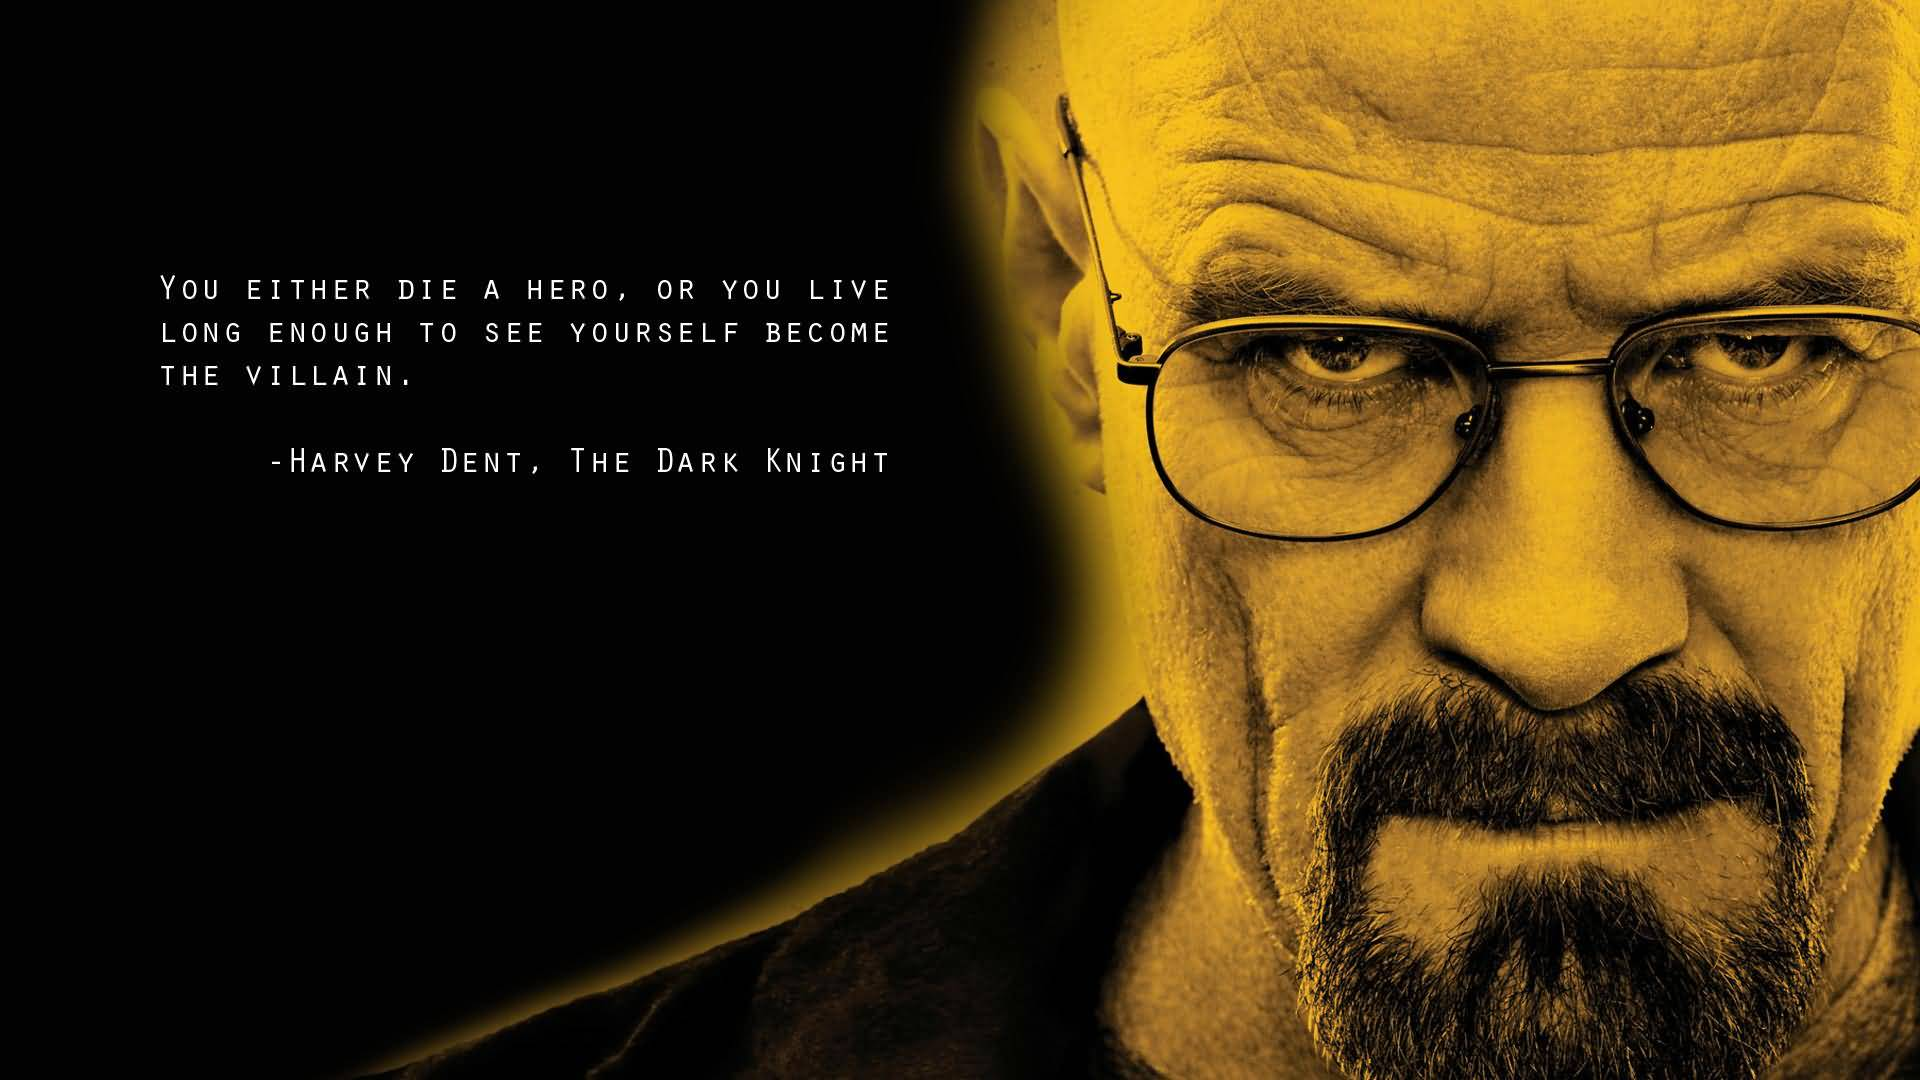 Movie Quotes You Either Die A Hero Or You Live Long